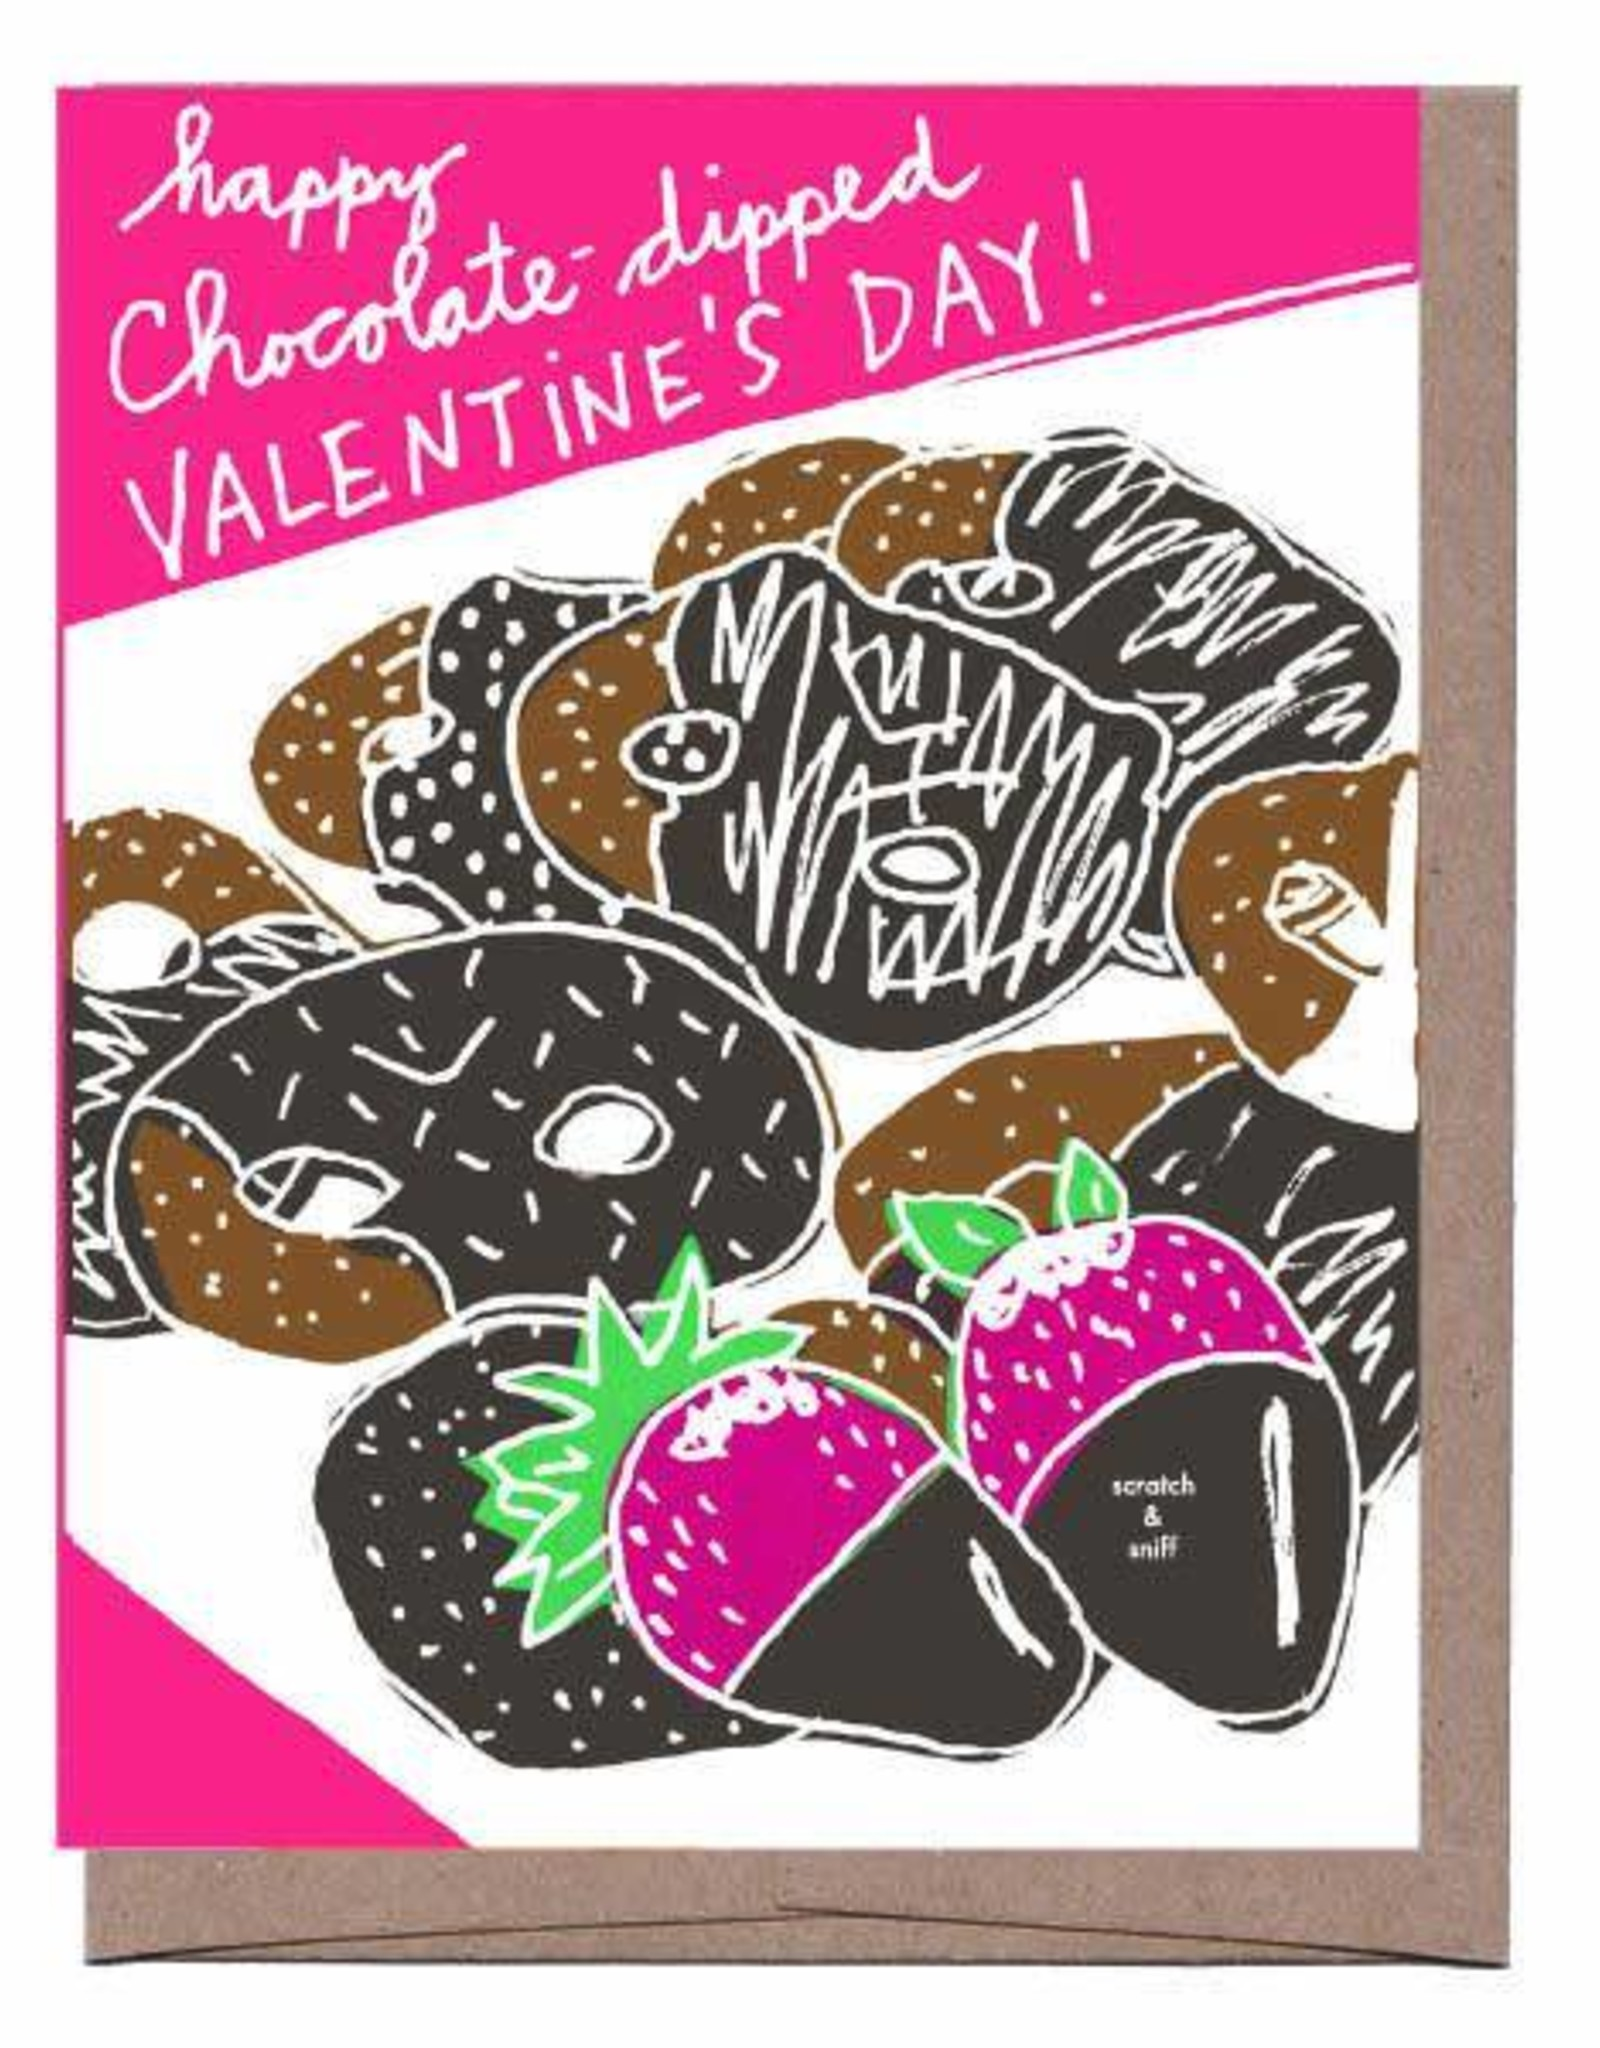 La Familia Green Scratch n Sniff Chocolate Dipped Valentine's Greeting Card